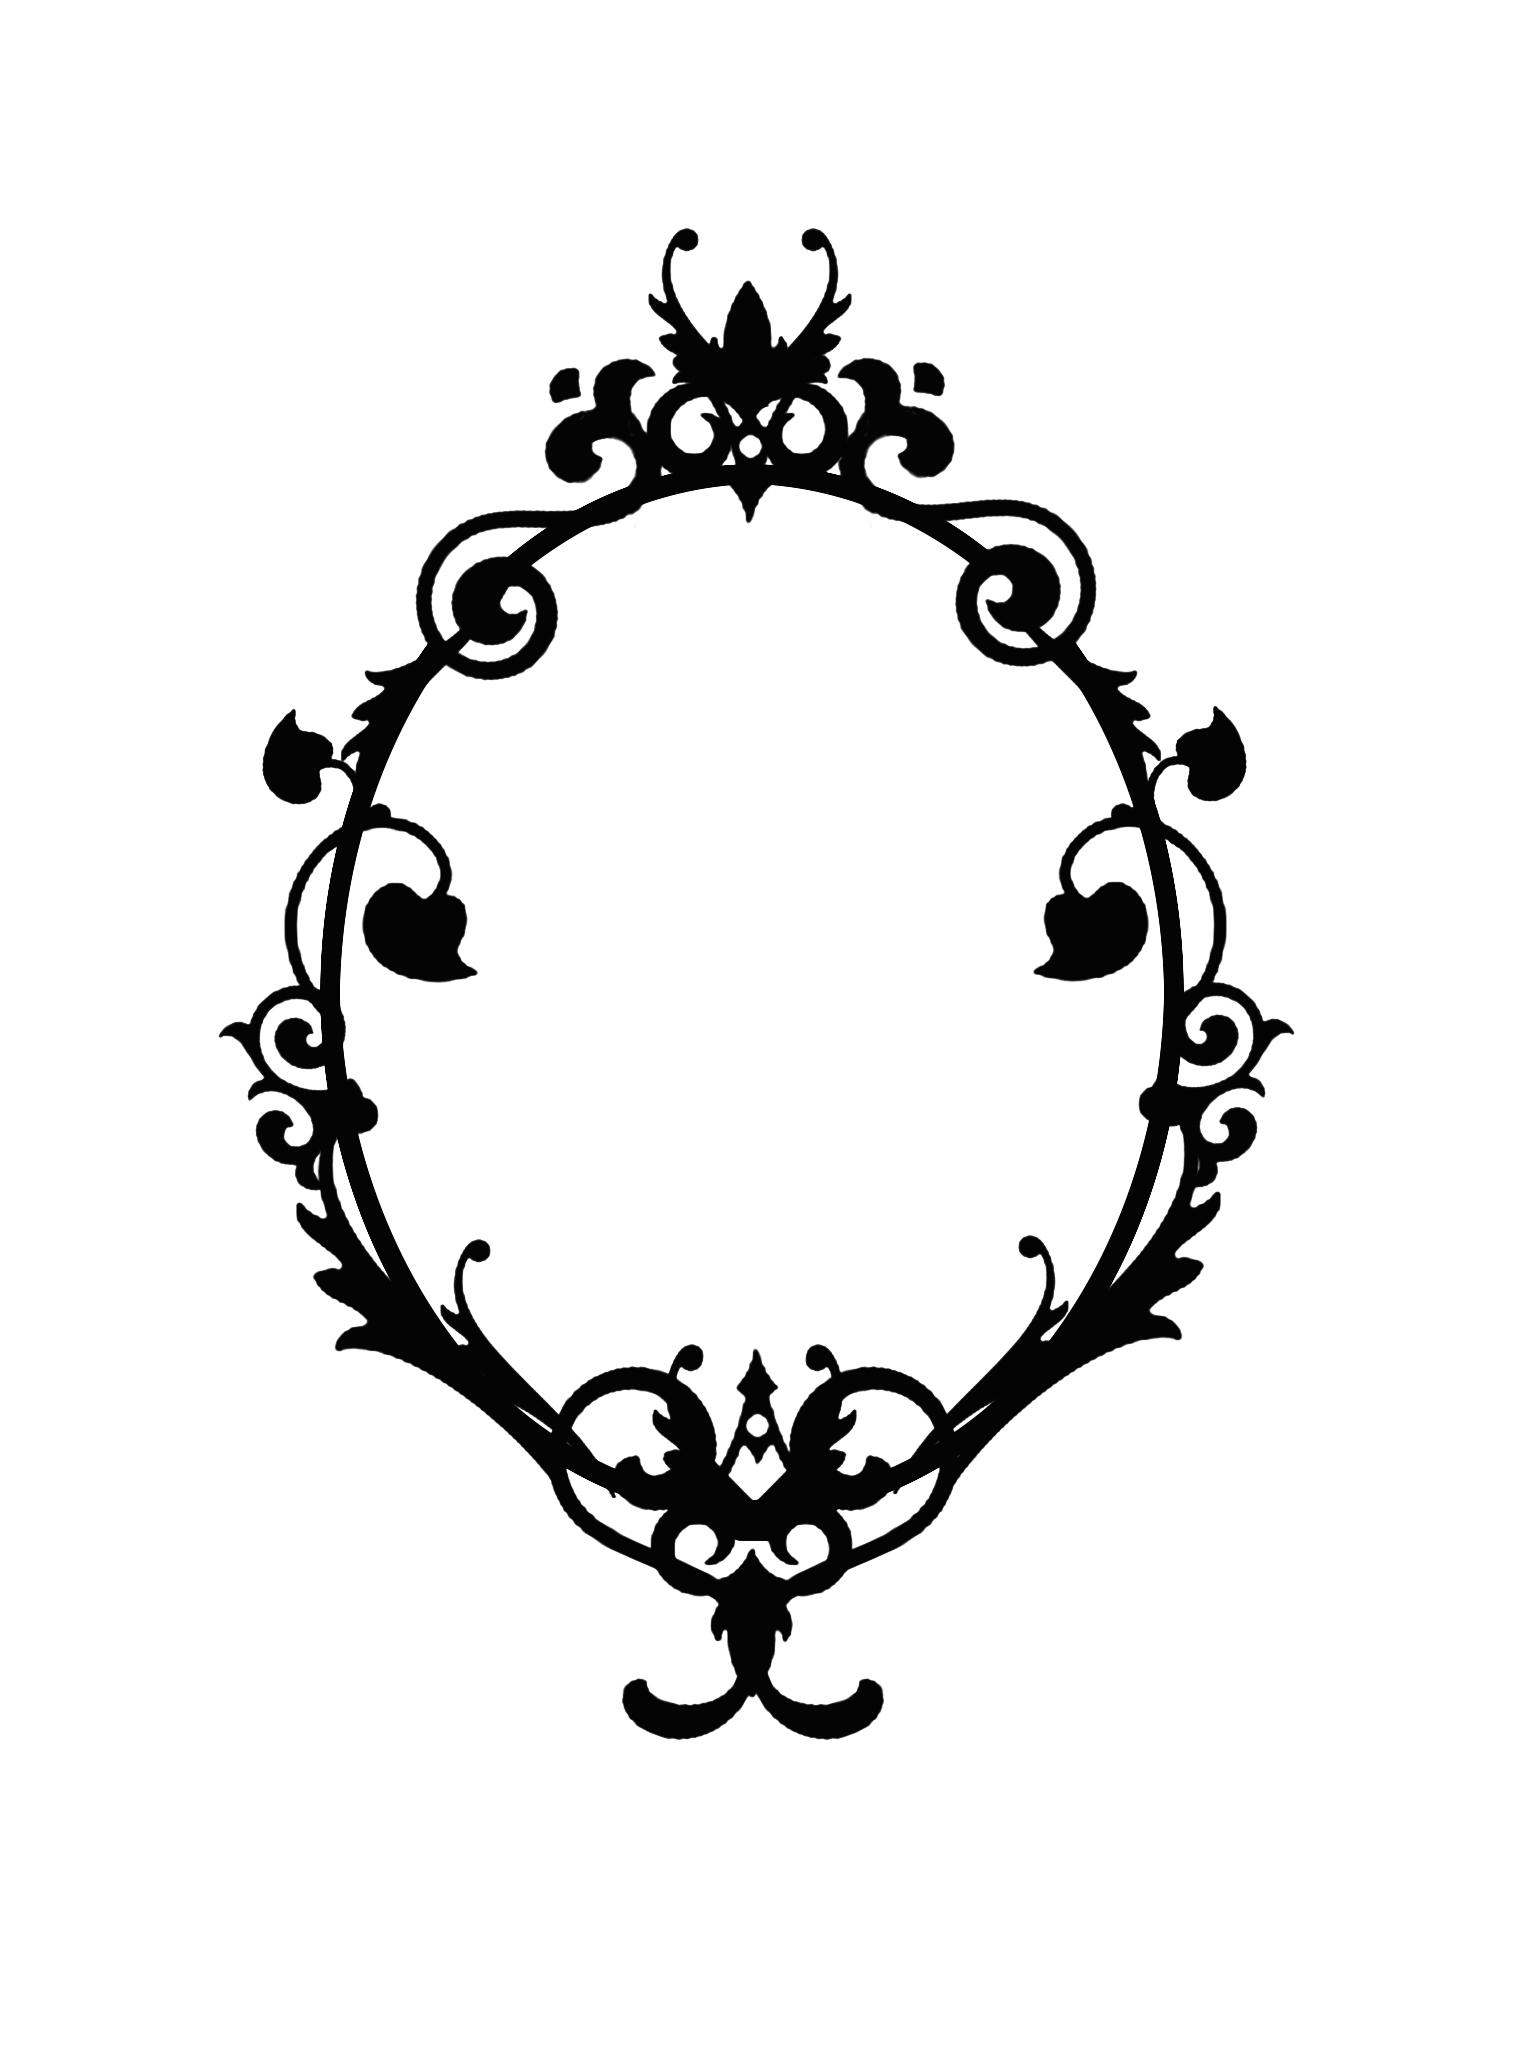 Borders drawing silhouette. Ornate oval frame cutout